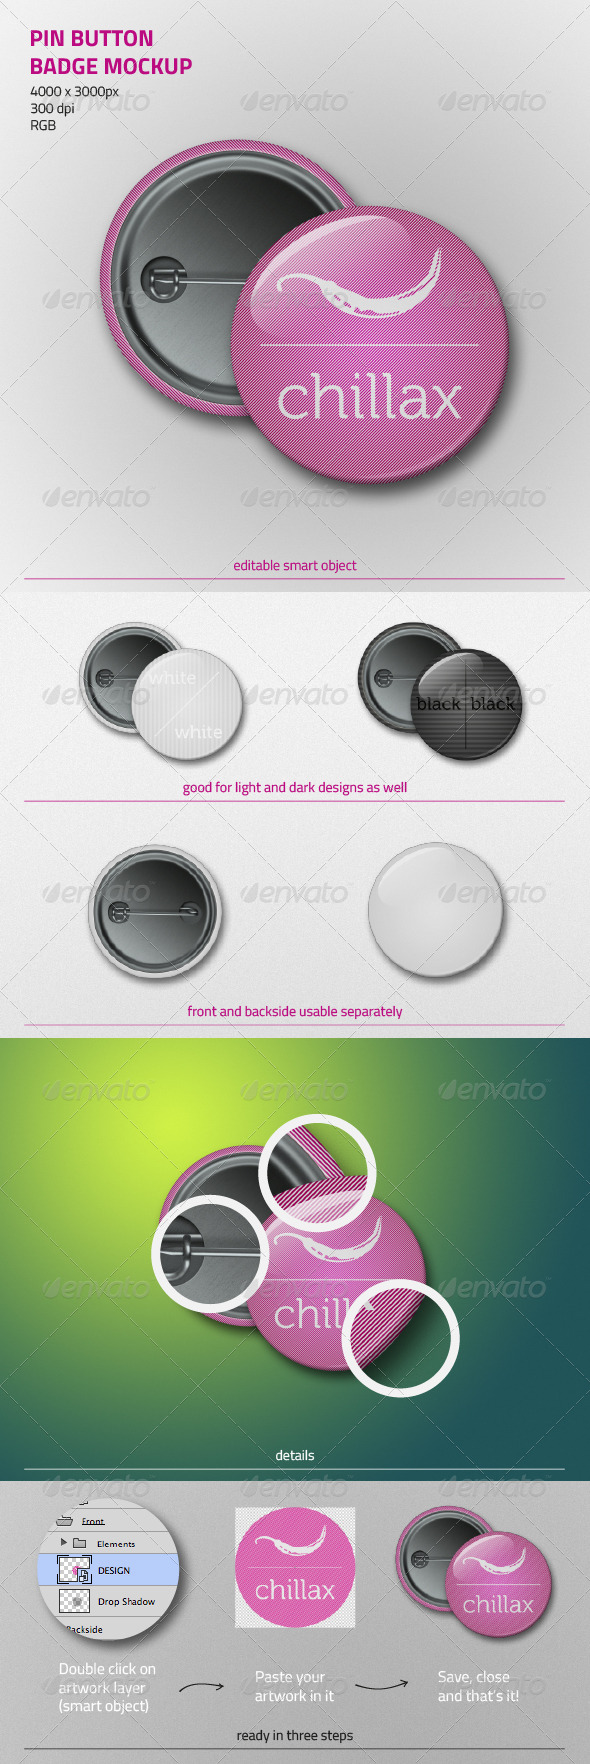 GraphicRiver Pin Button Badge Mockup 4406922